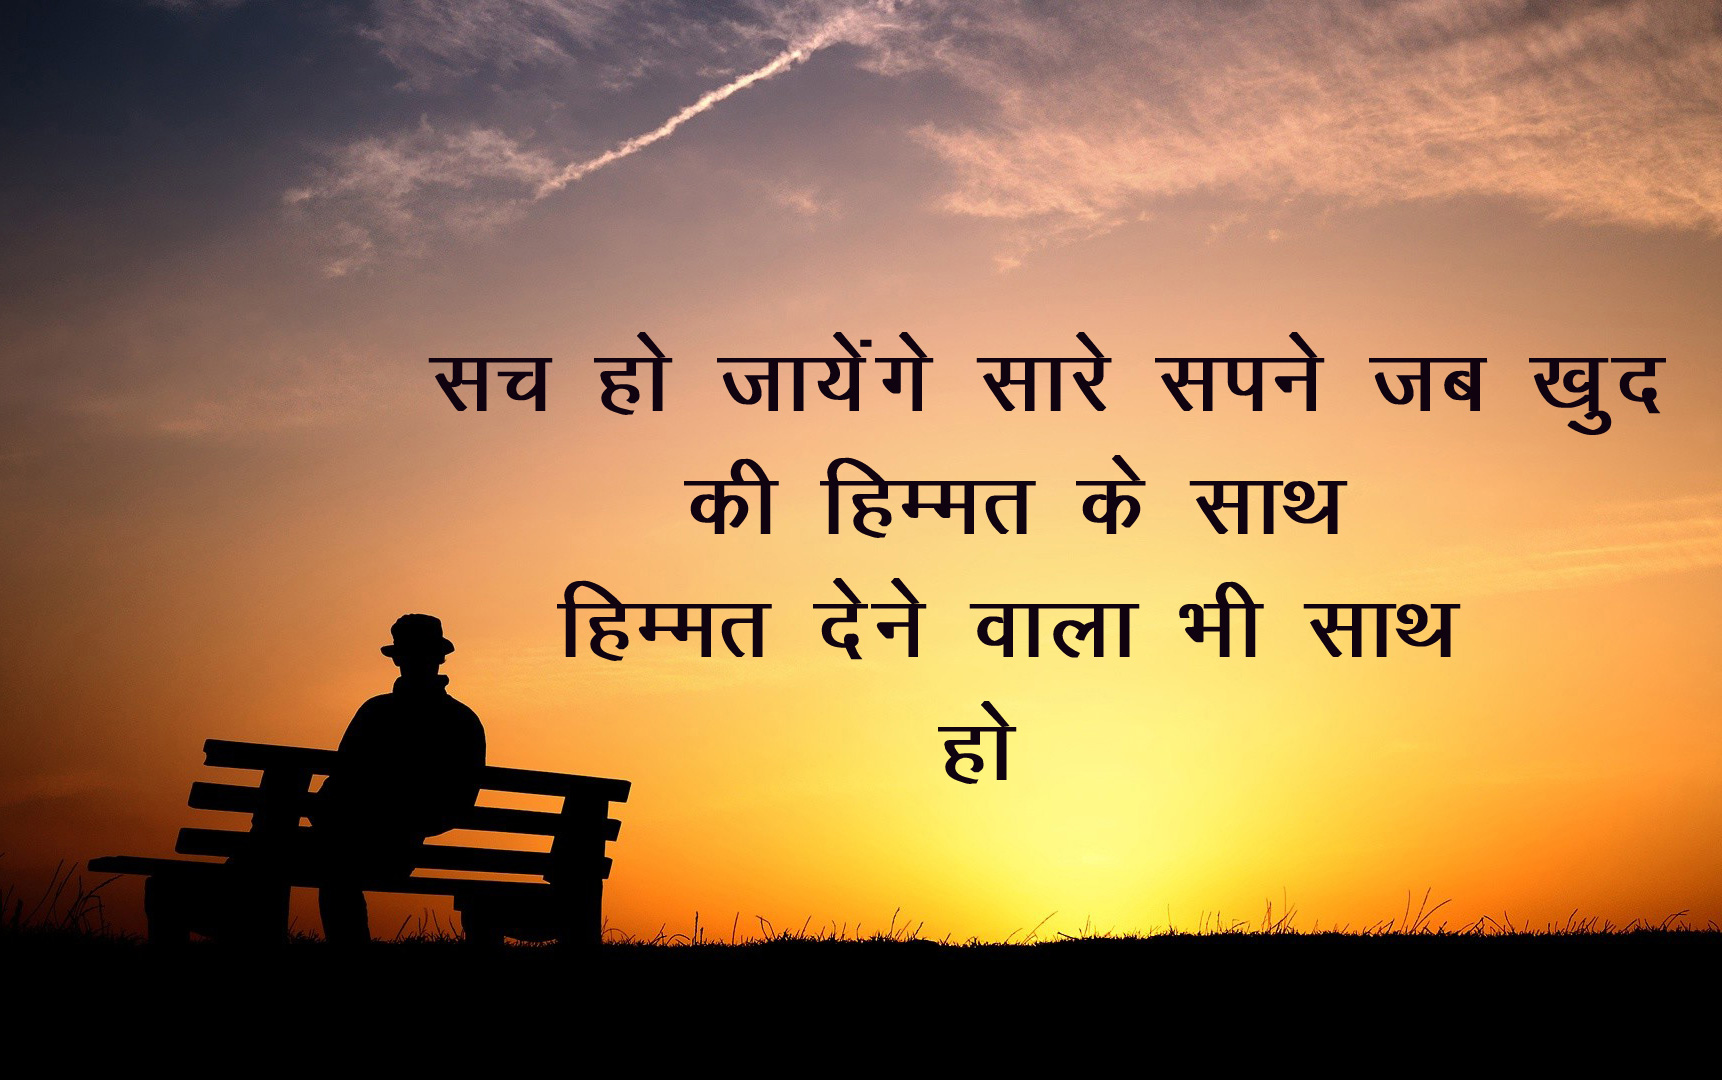 Hindi Inspirational Images Photo Free Download